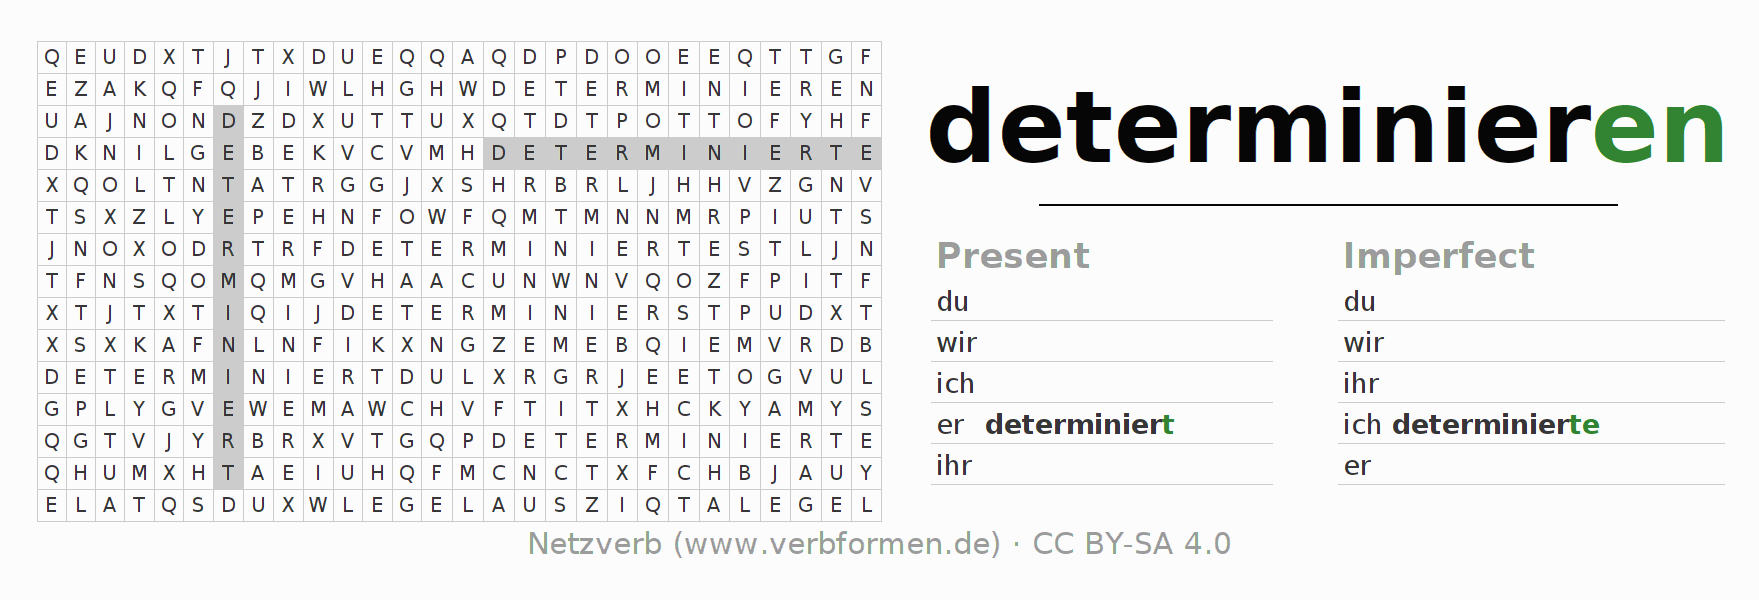 Word search puzzle for the conjugation of the verb determinieren